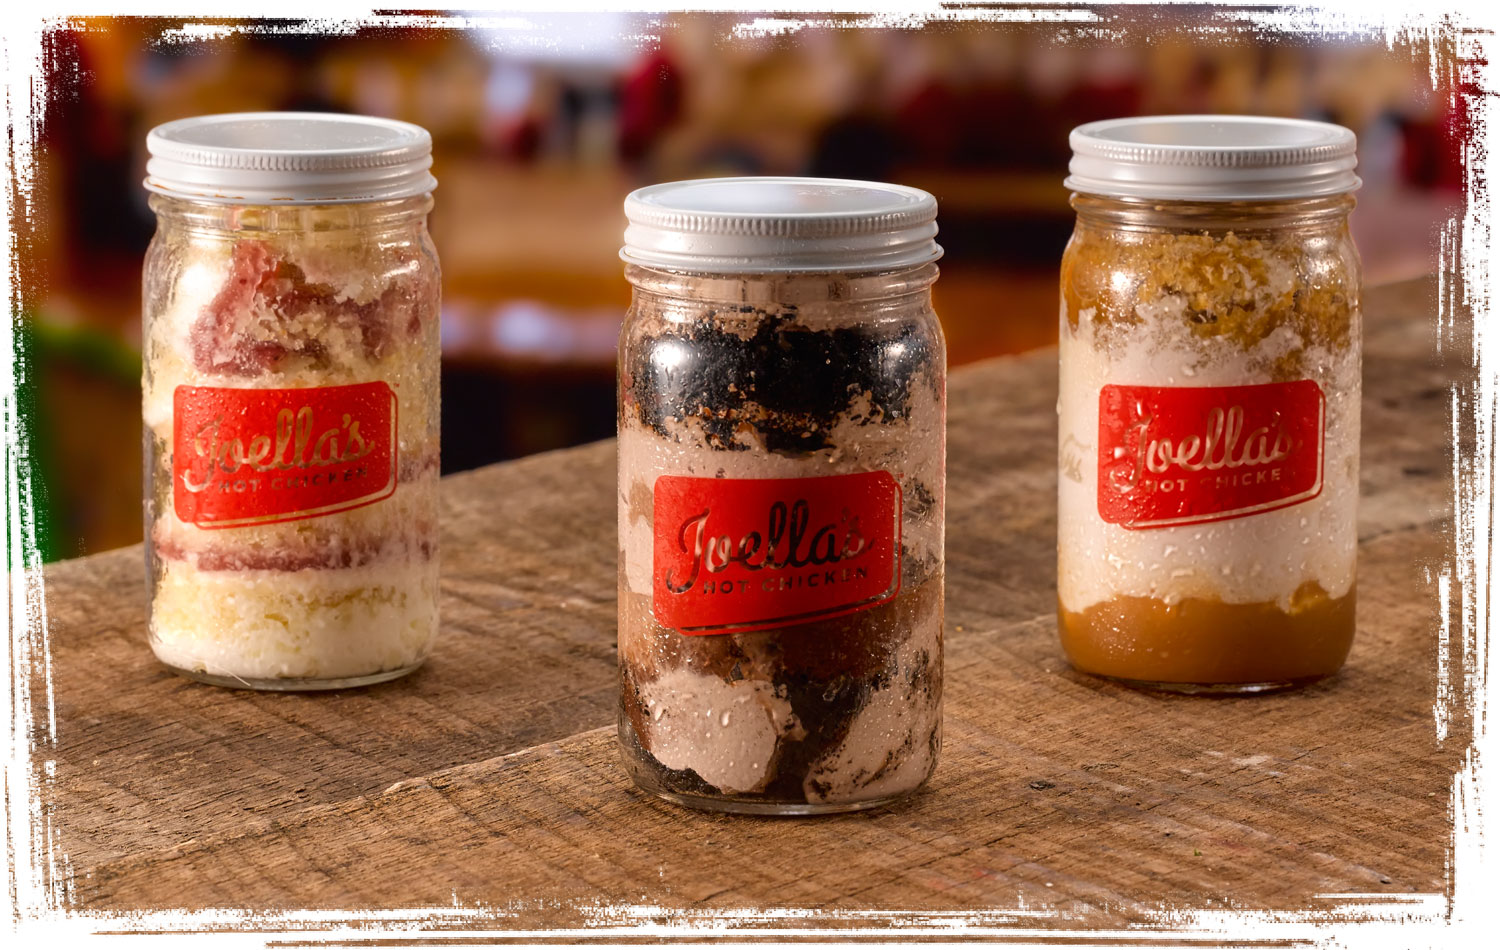 Joella's Cookies & Cream, Strawberry Shortcake, and Seasonal Flavor Pie-in a-Jar desserts